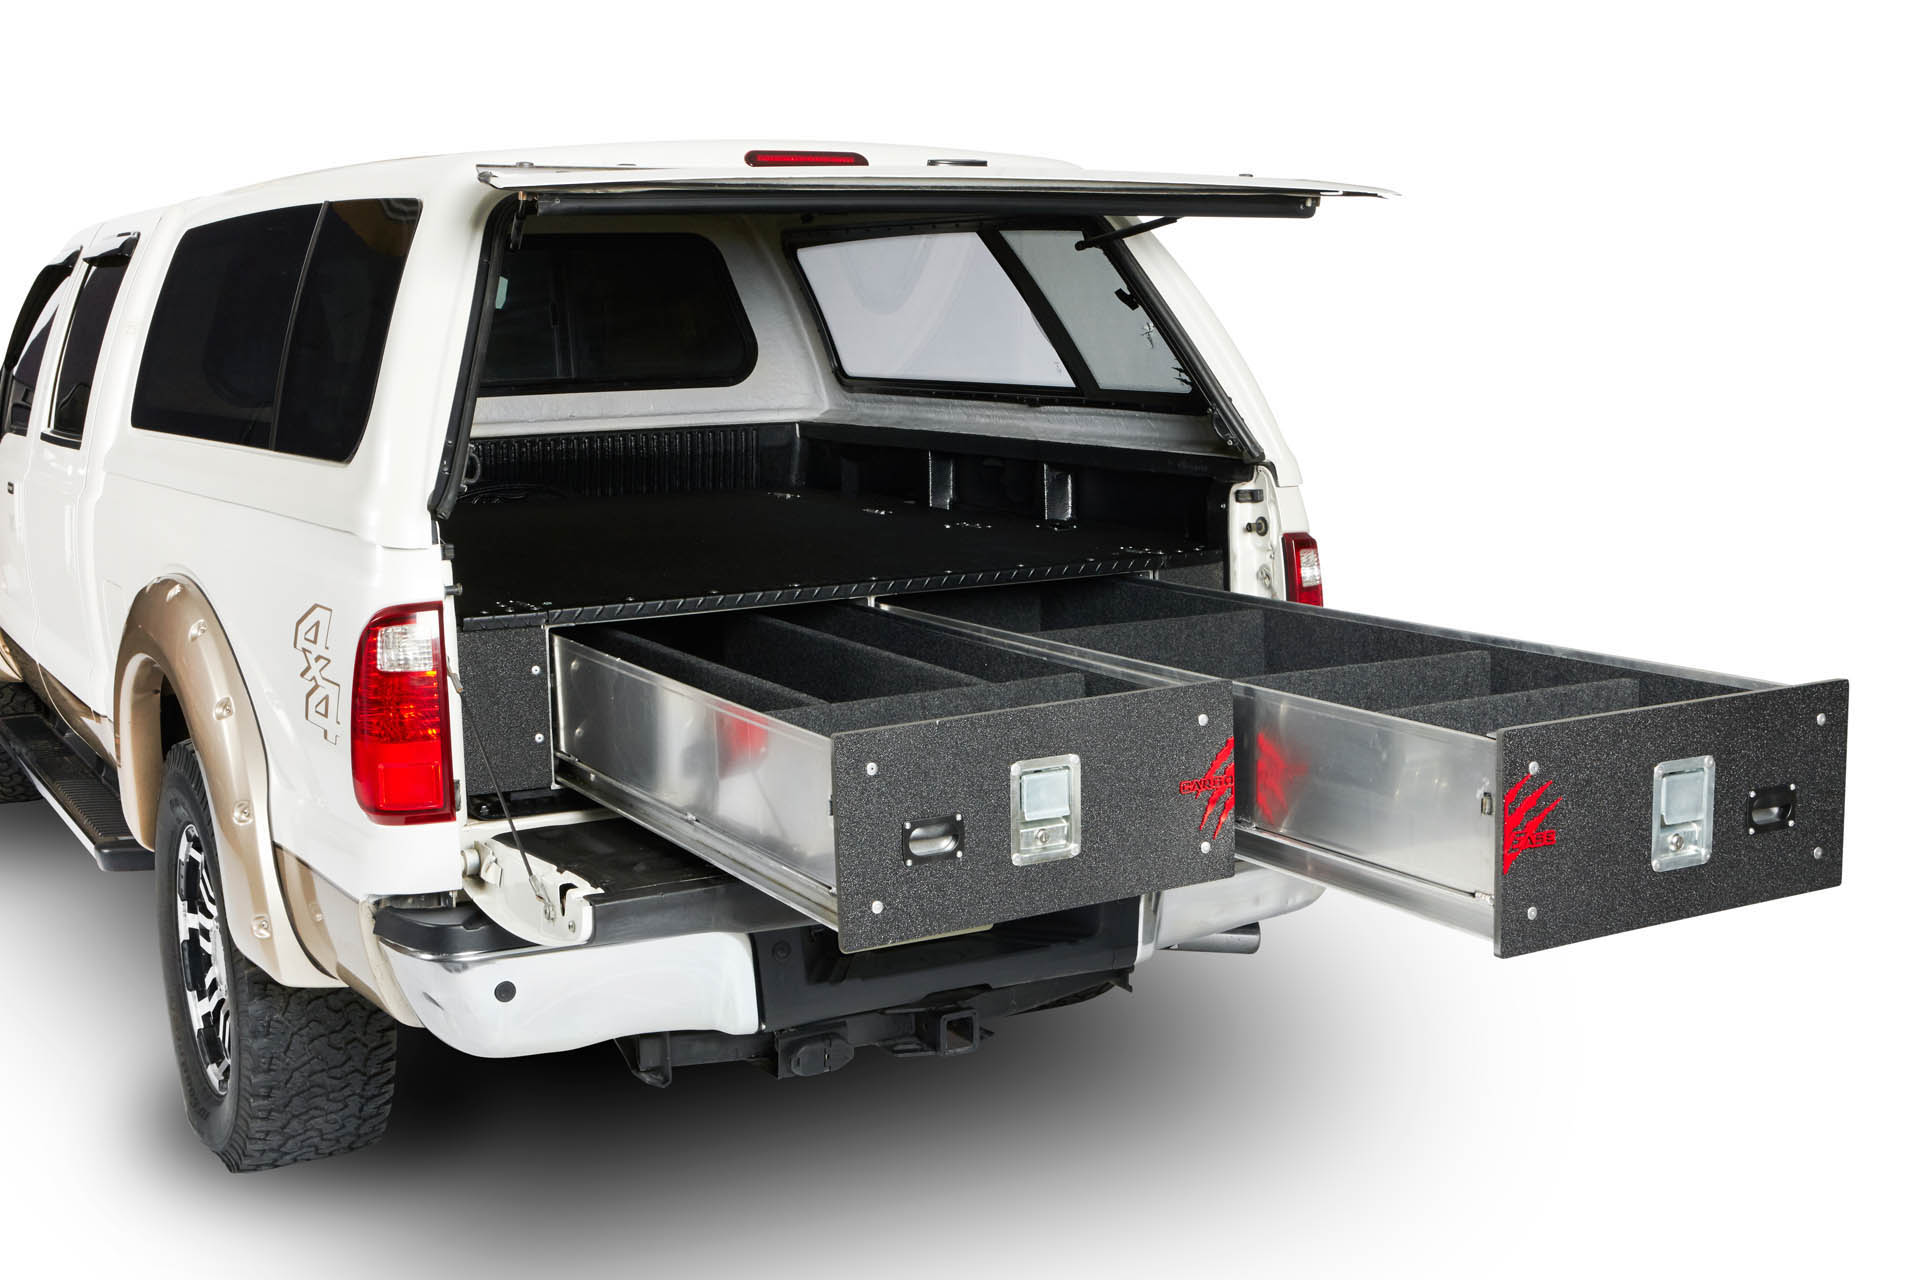 Truck And Van Storage Makes Use Of Every Inch Remodeling